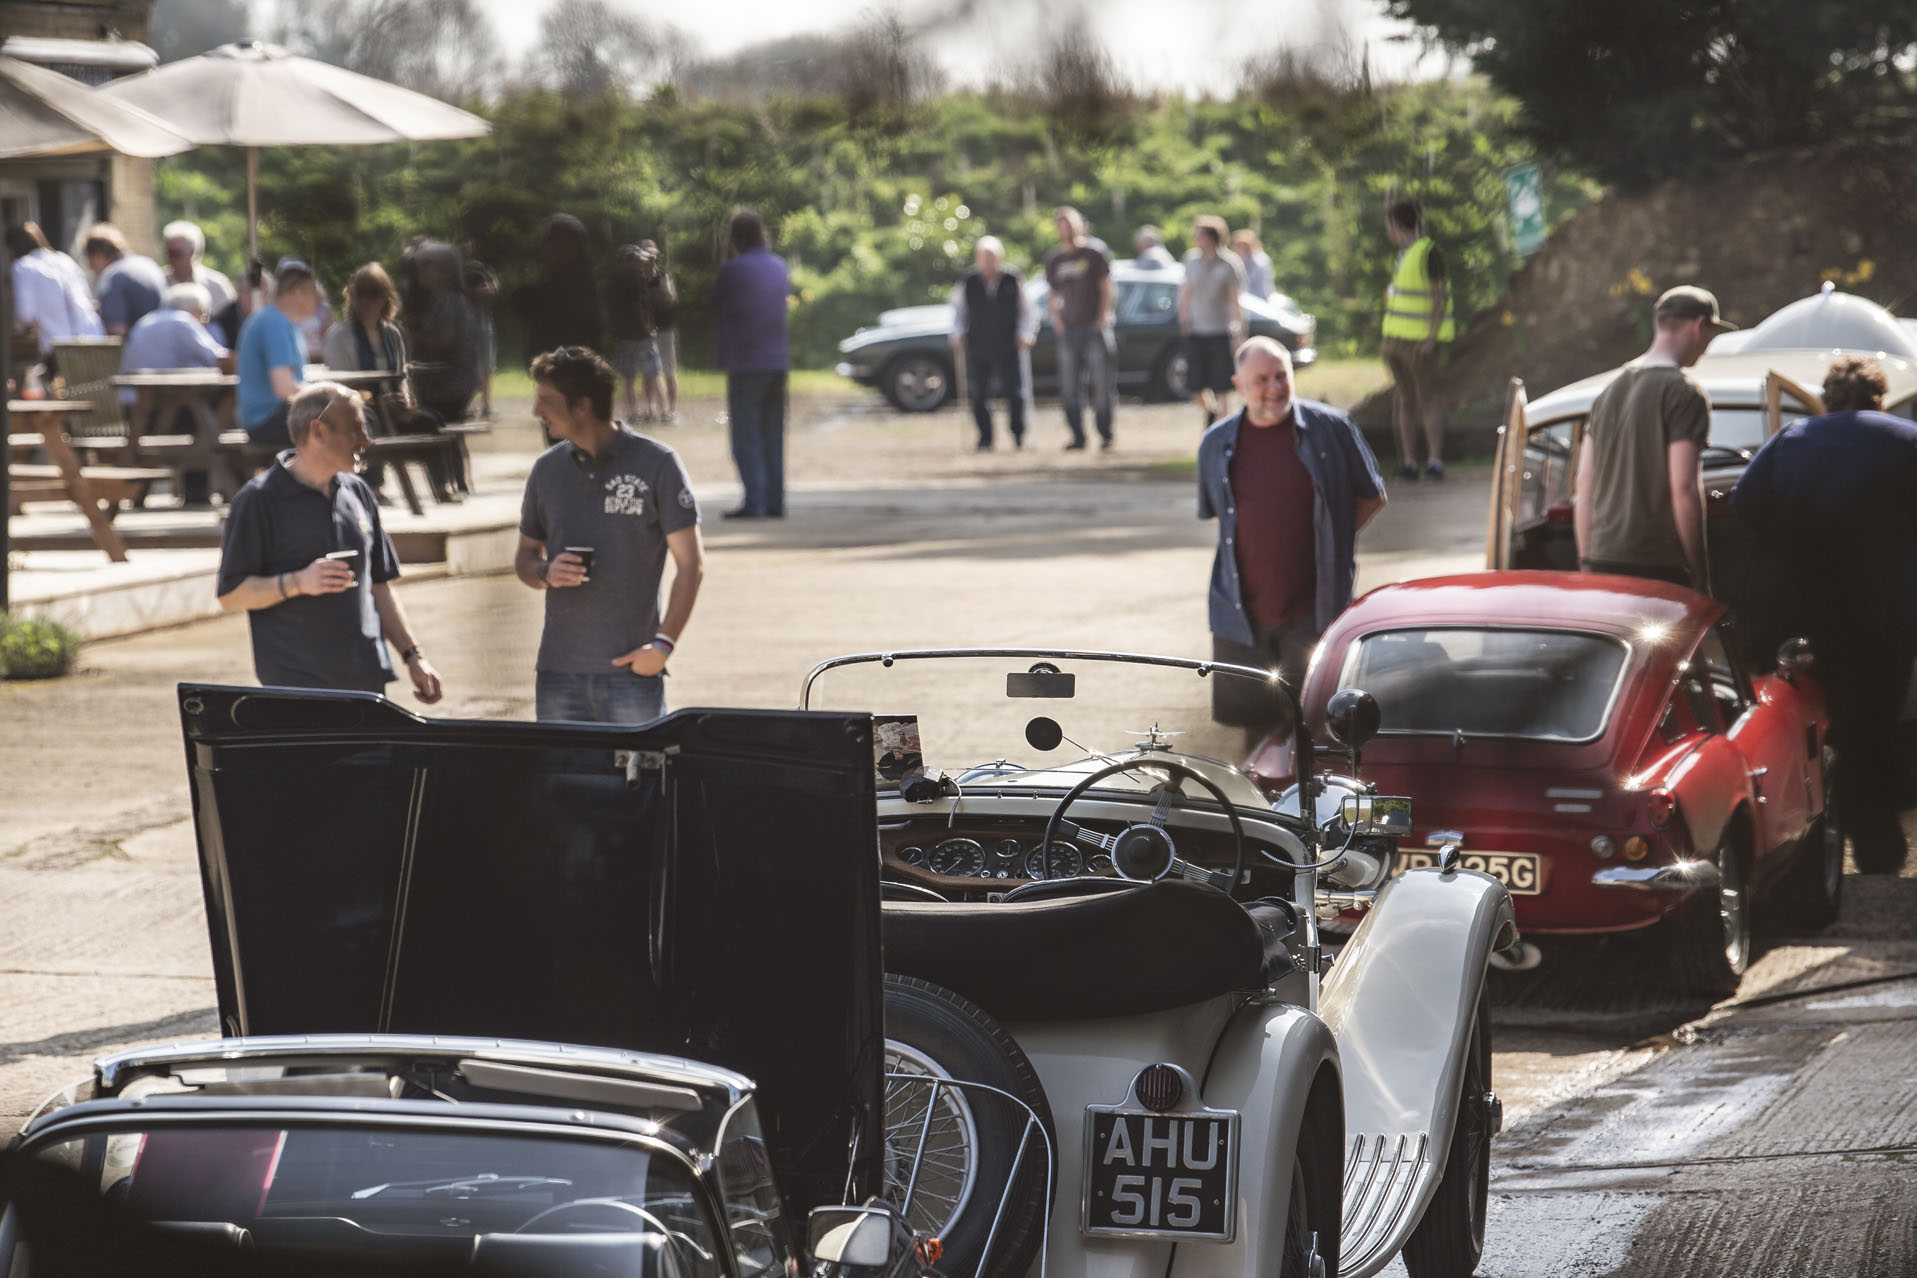 White singer and crowds at Classic Motor Hub